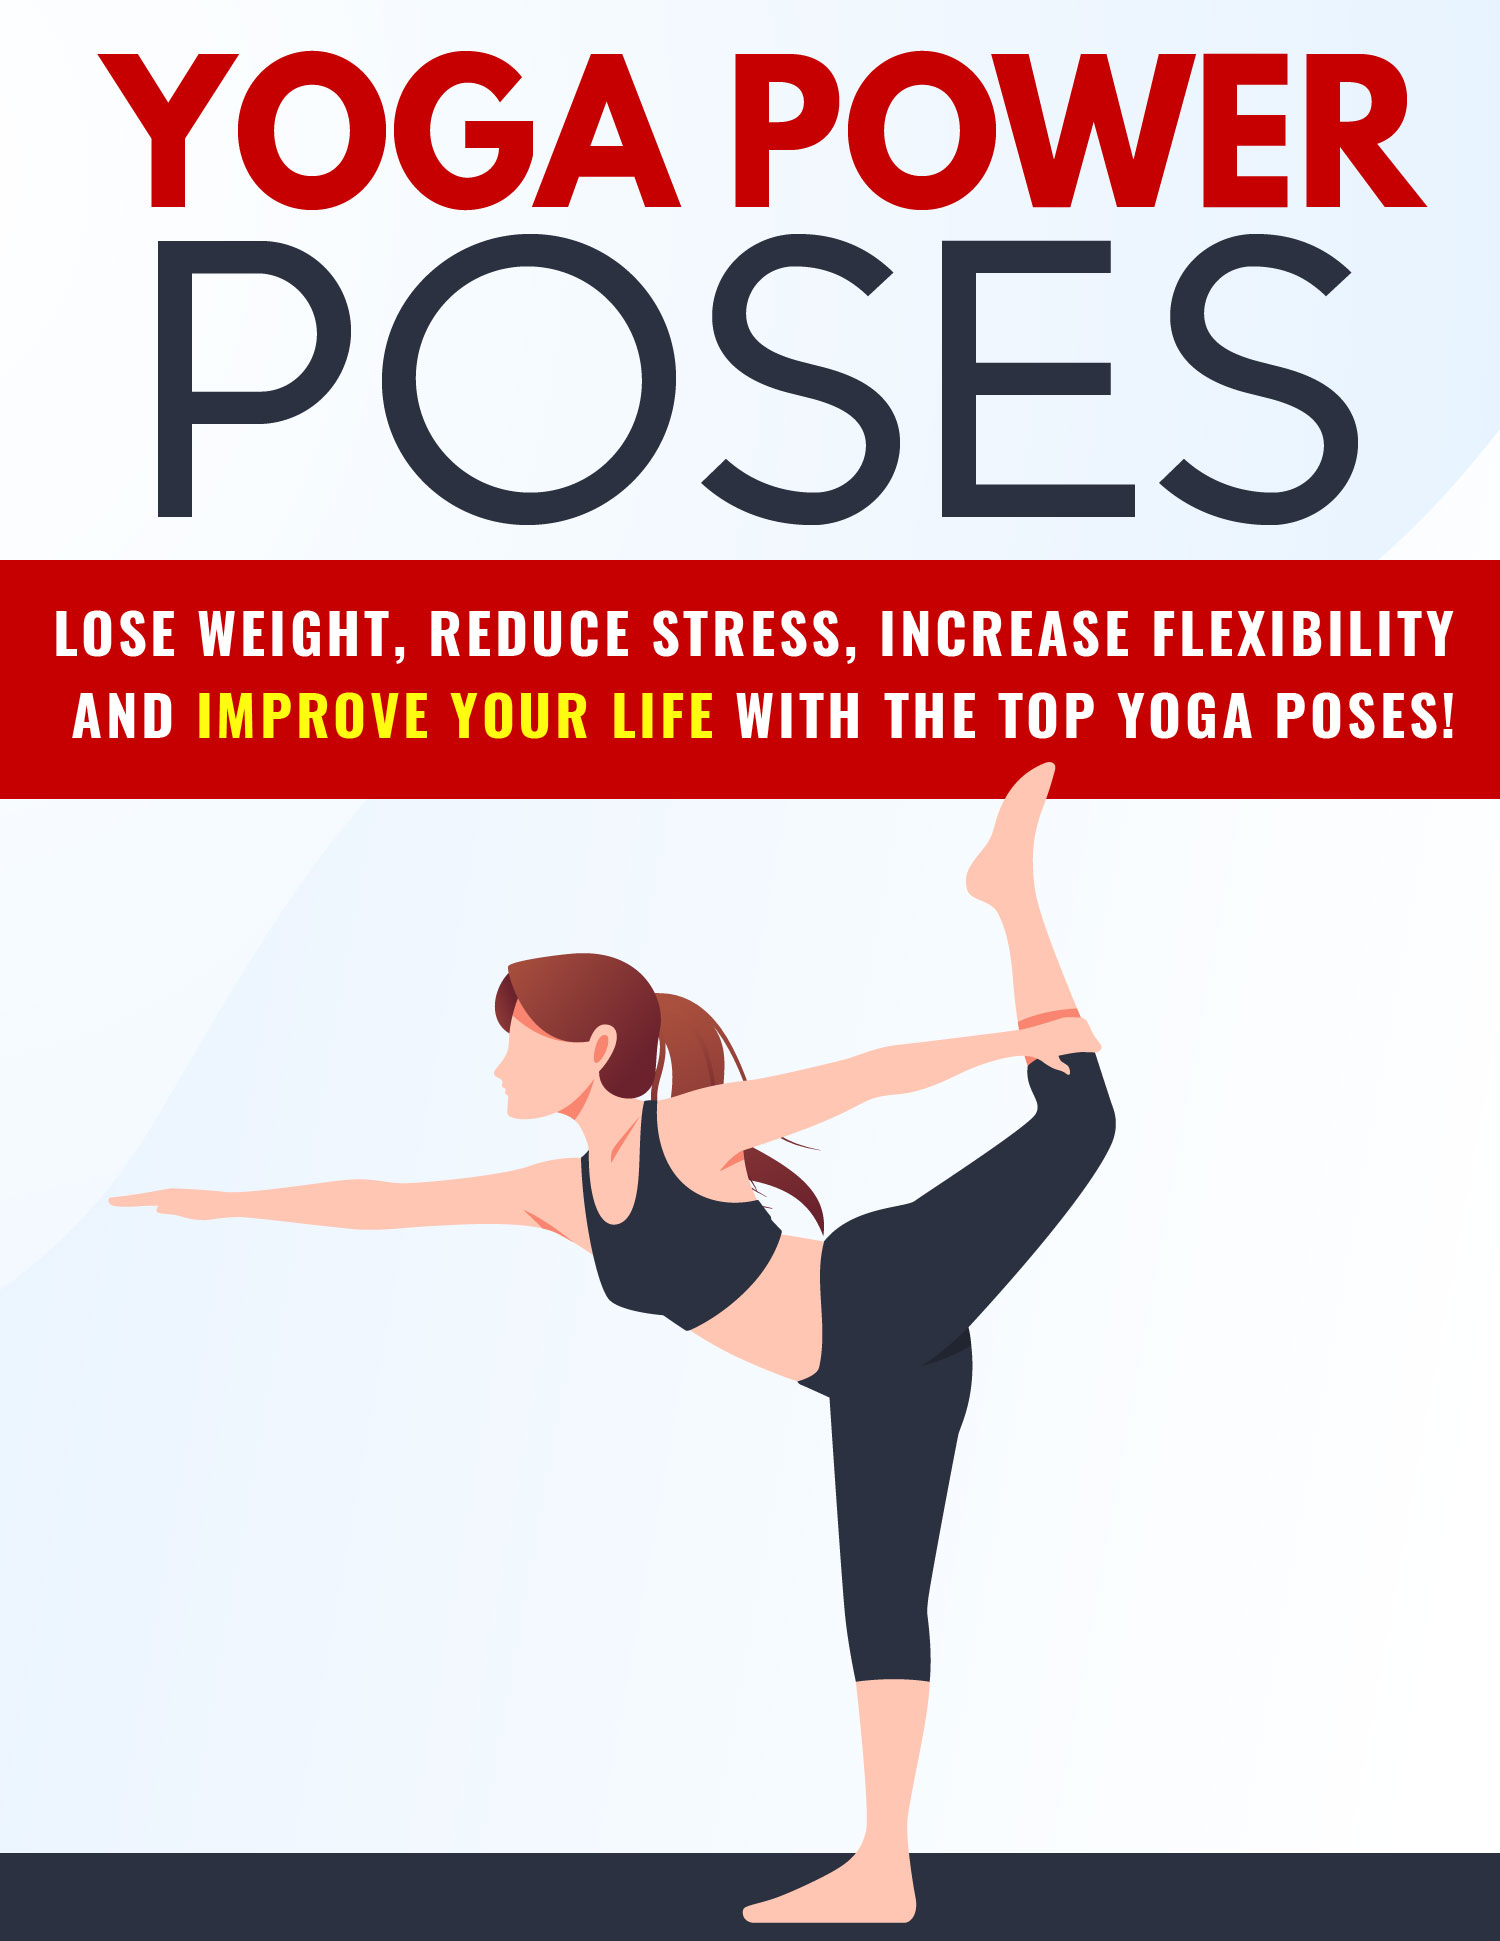 I will send you the Yoga Power Poses eBook